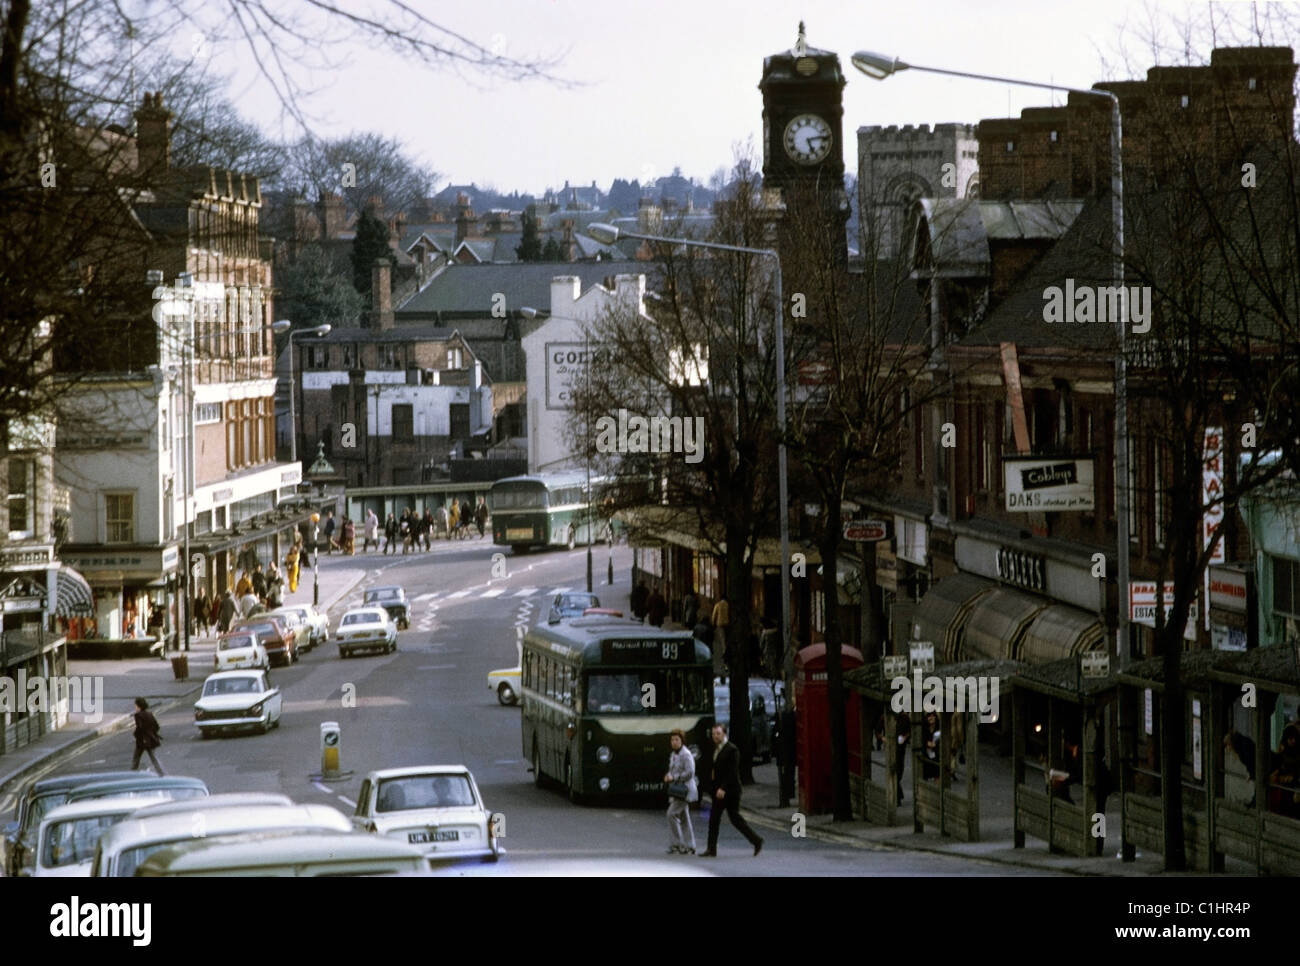 1970s historical view of people and traffic on the high street of town in autumn Royal Tunbridge Wells in Kent England Stock Photo